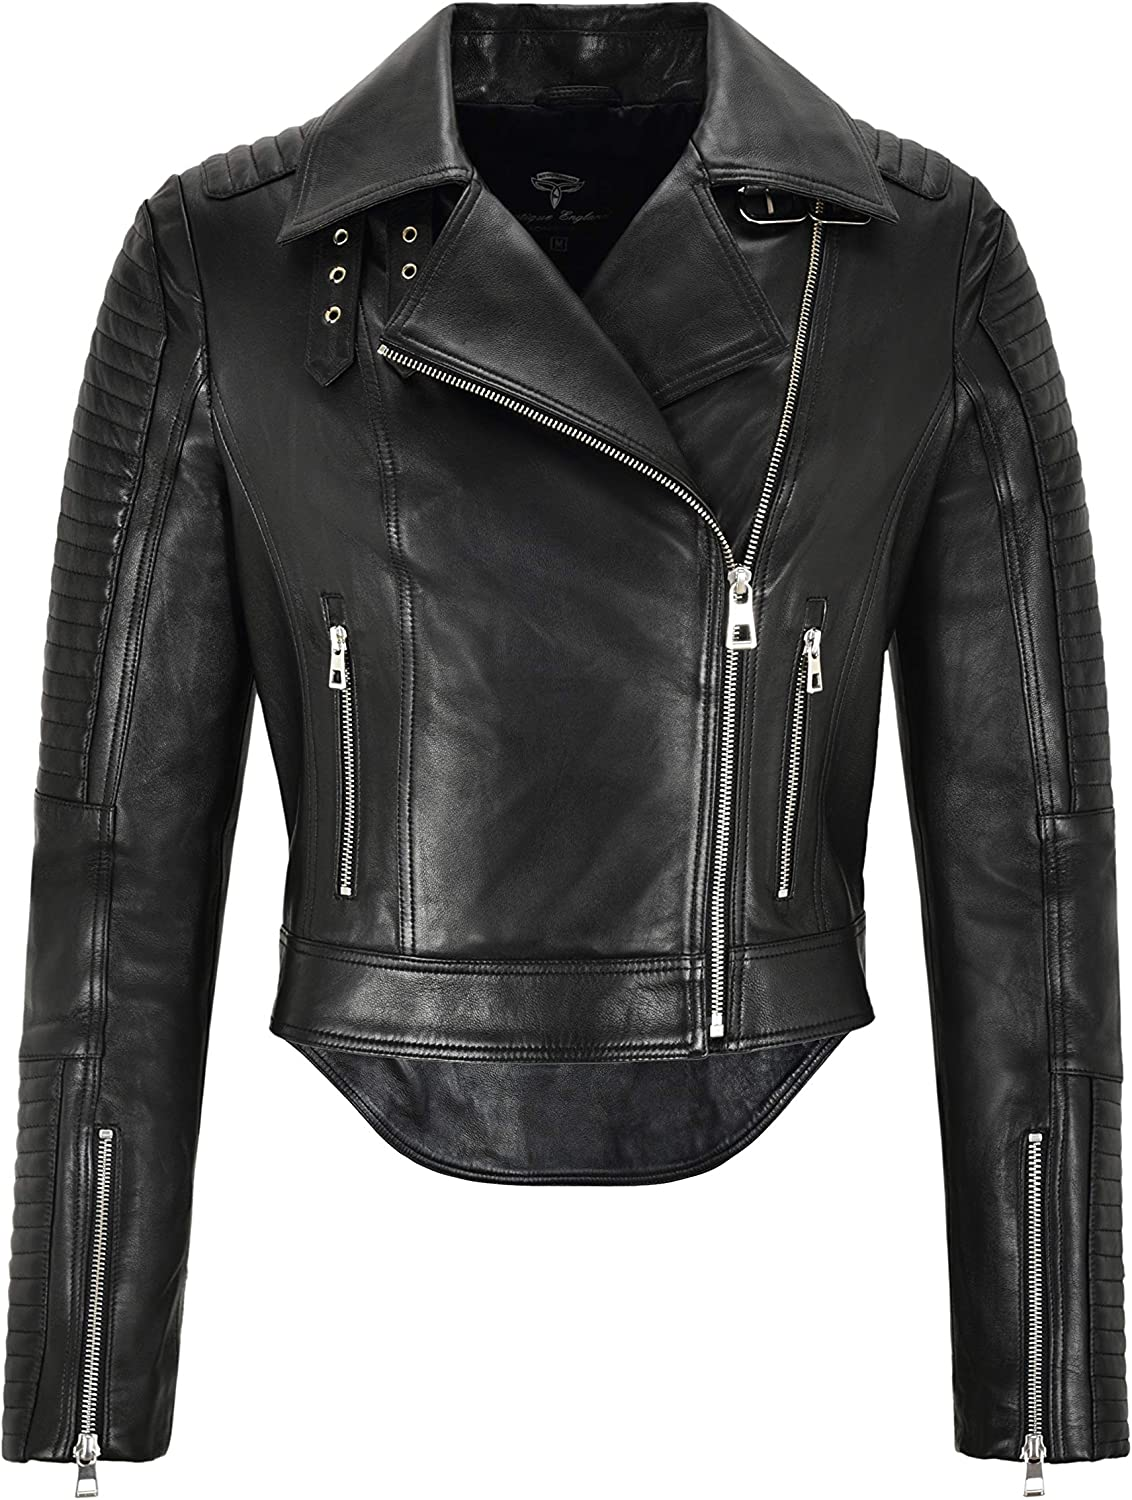 Boutique Catarina Ladies Cropped Biker Fashion Leather Jacket with Dovetail